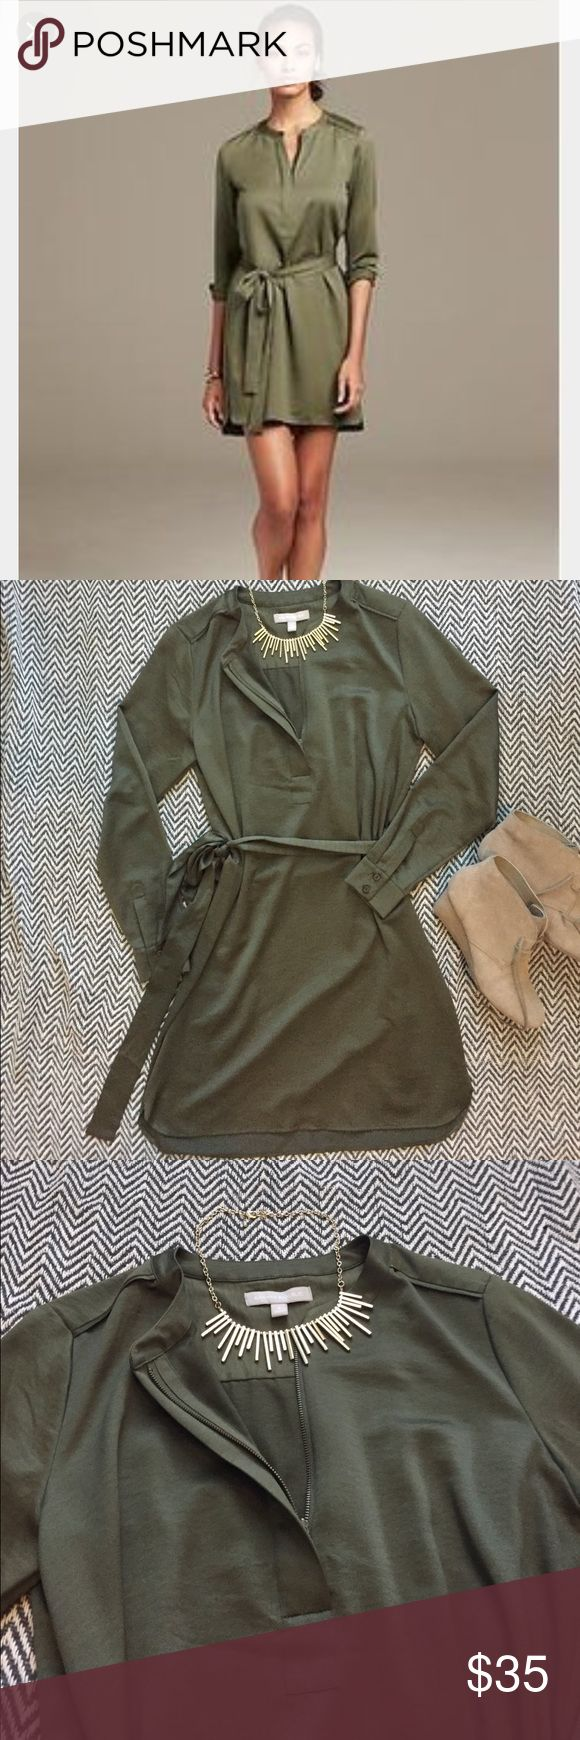 Banana Republic Silk Tunic Dress Worn a few times, usually as a business casual outfit. With brown boots or tan booties. Pairs well with gold or bronze jewelry. I'm good condition except for small snag on the left hip (see last pic) Banana Republic Dresses Midi